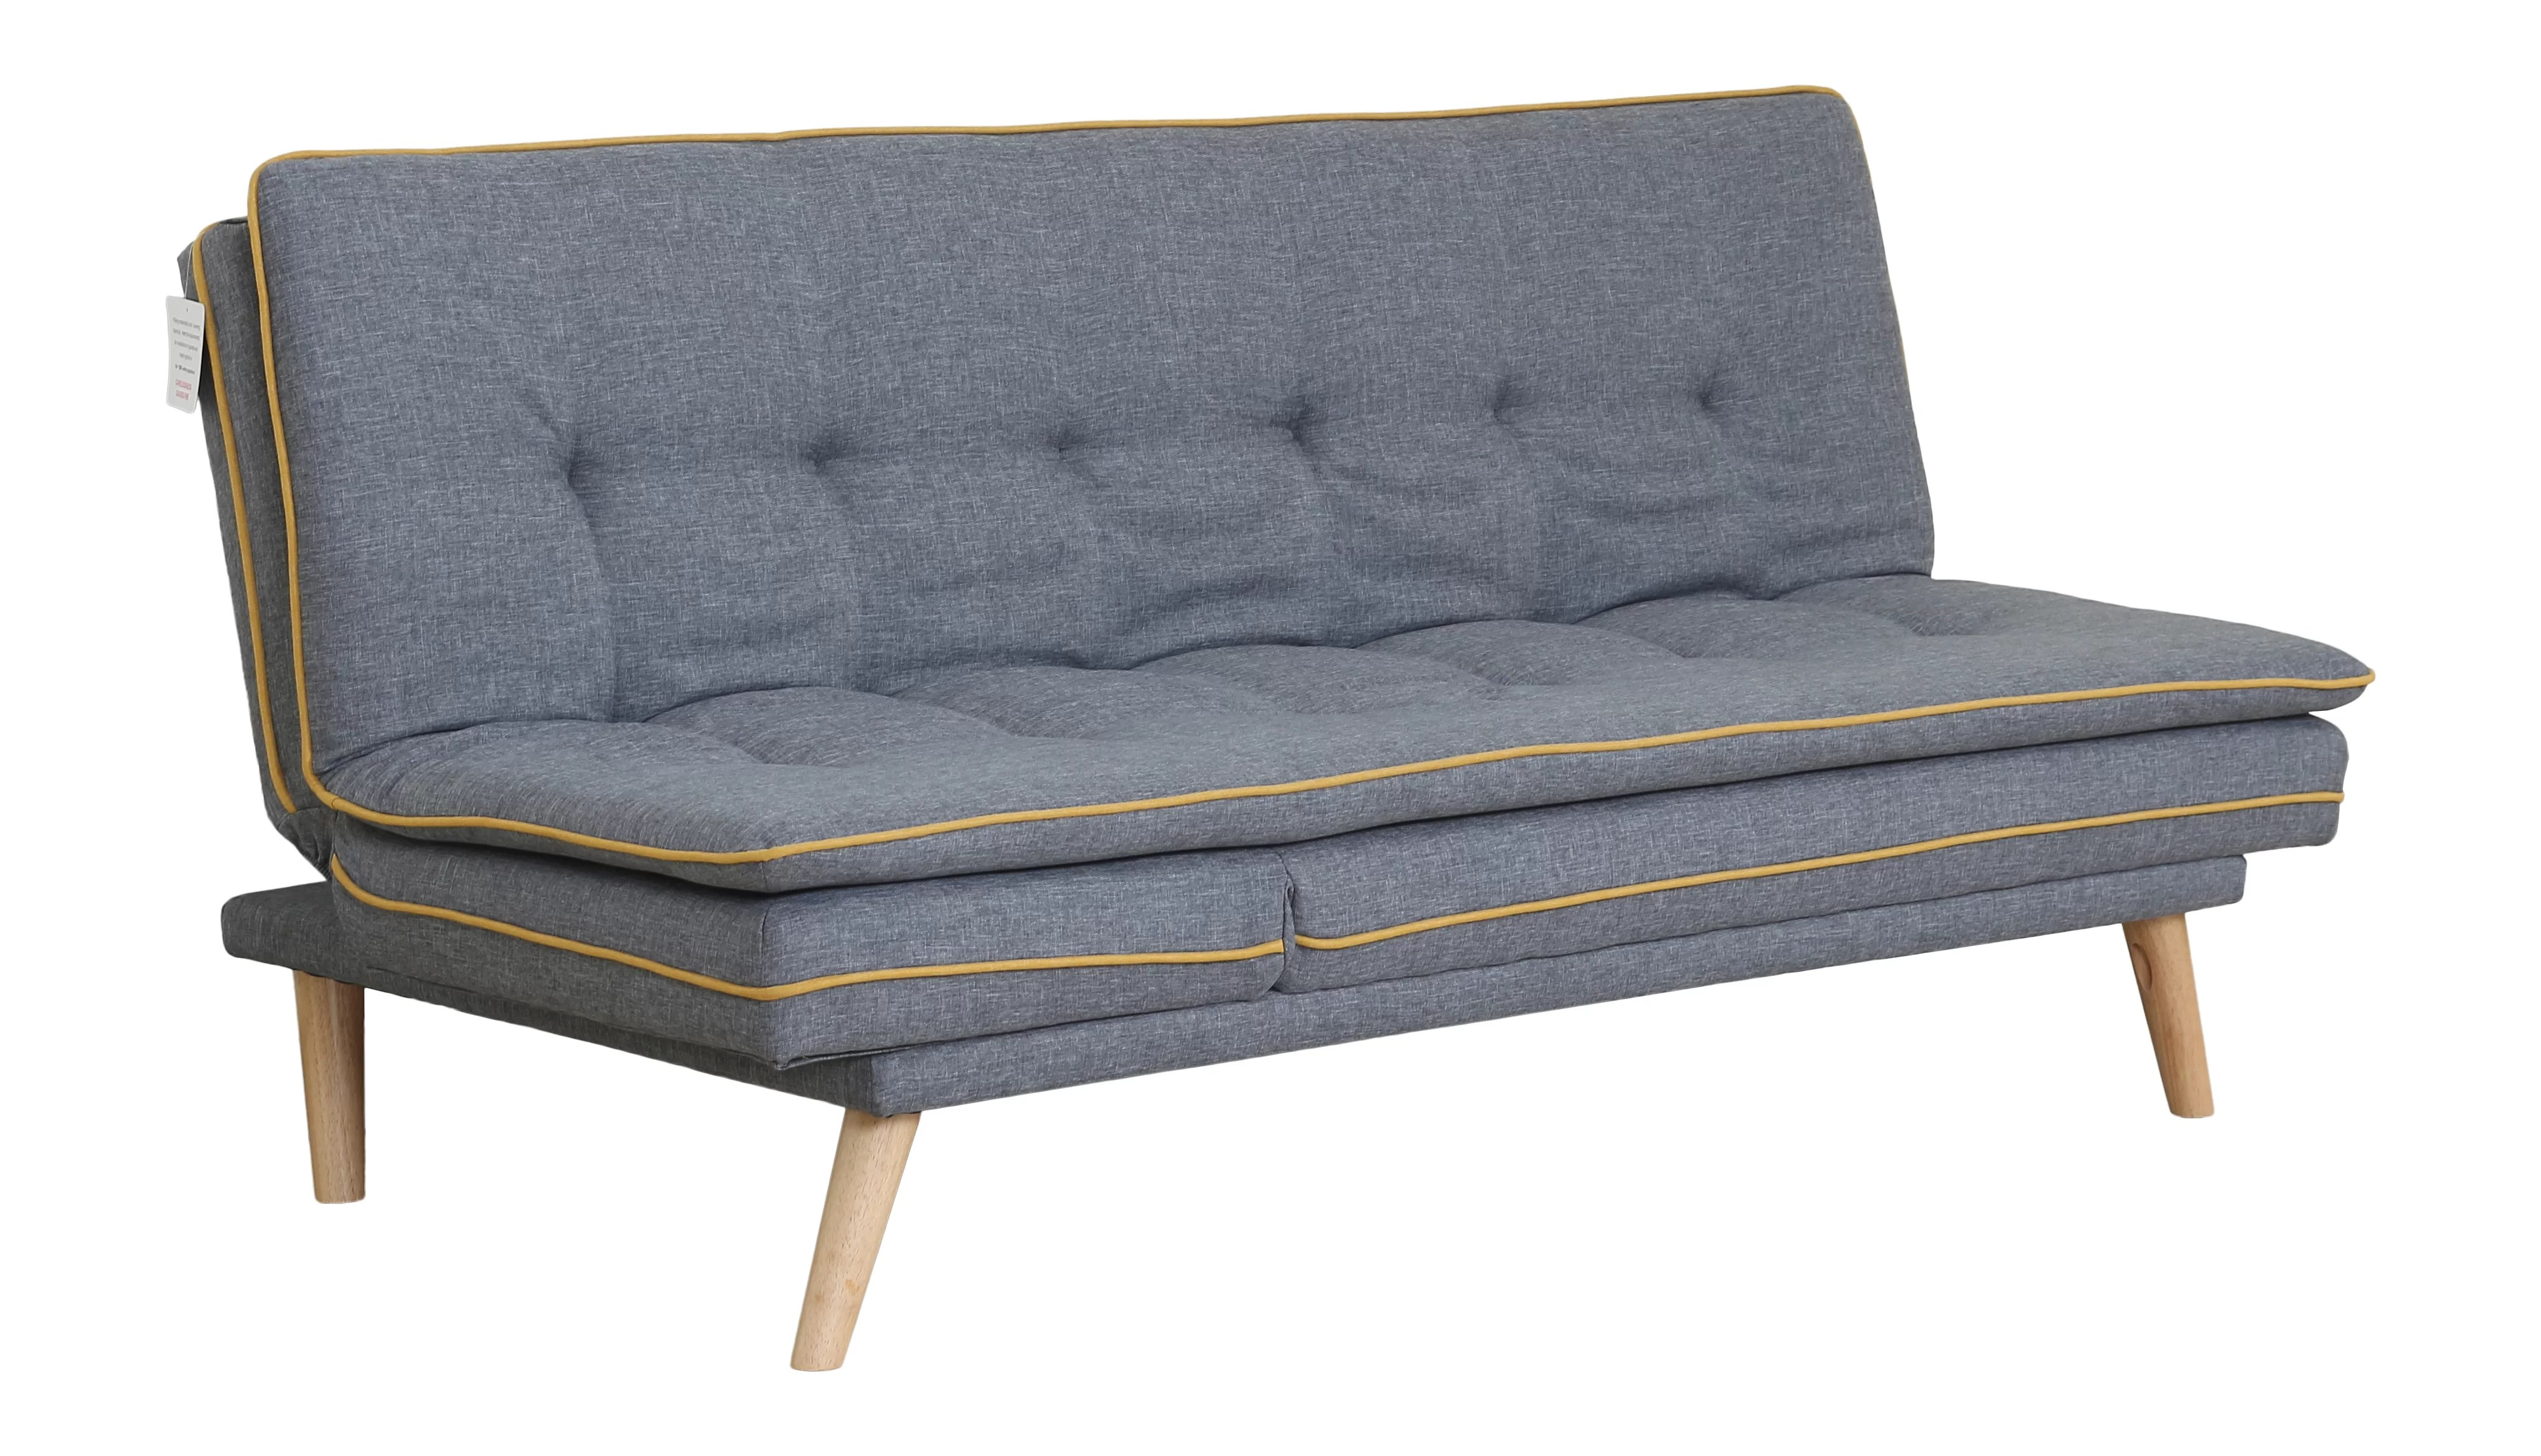 Slumberland Sofa Beds Uk Clic Clac Sofa Bed Double Best Interior Furniture